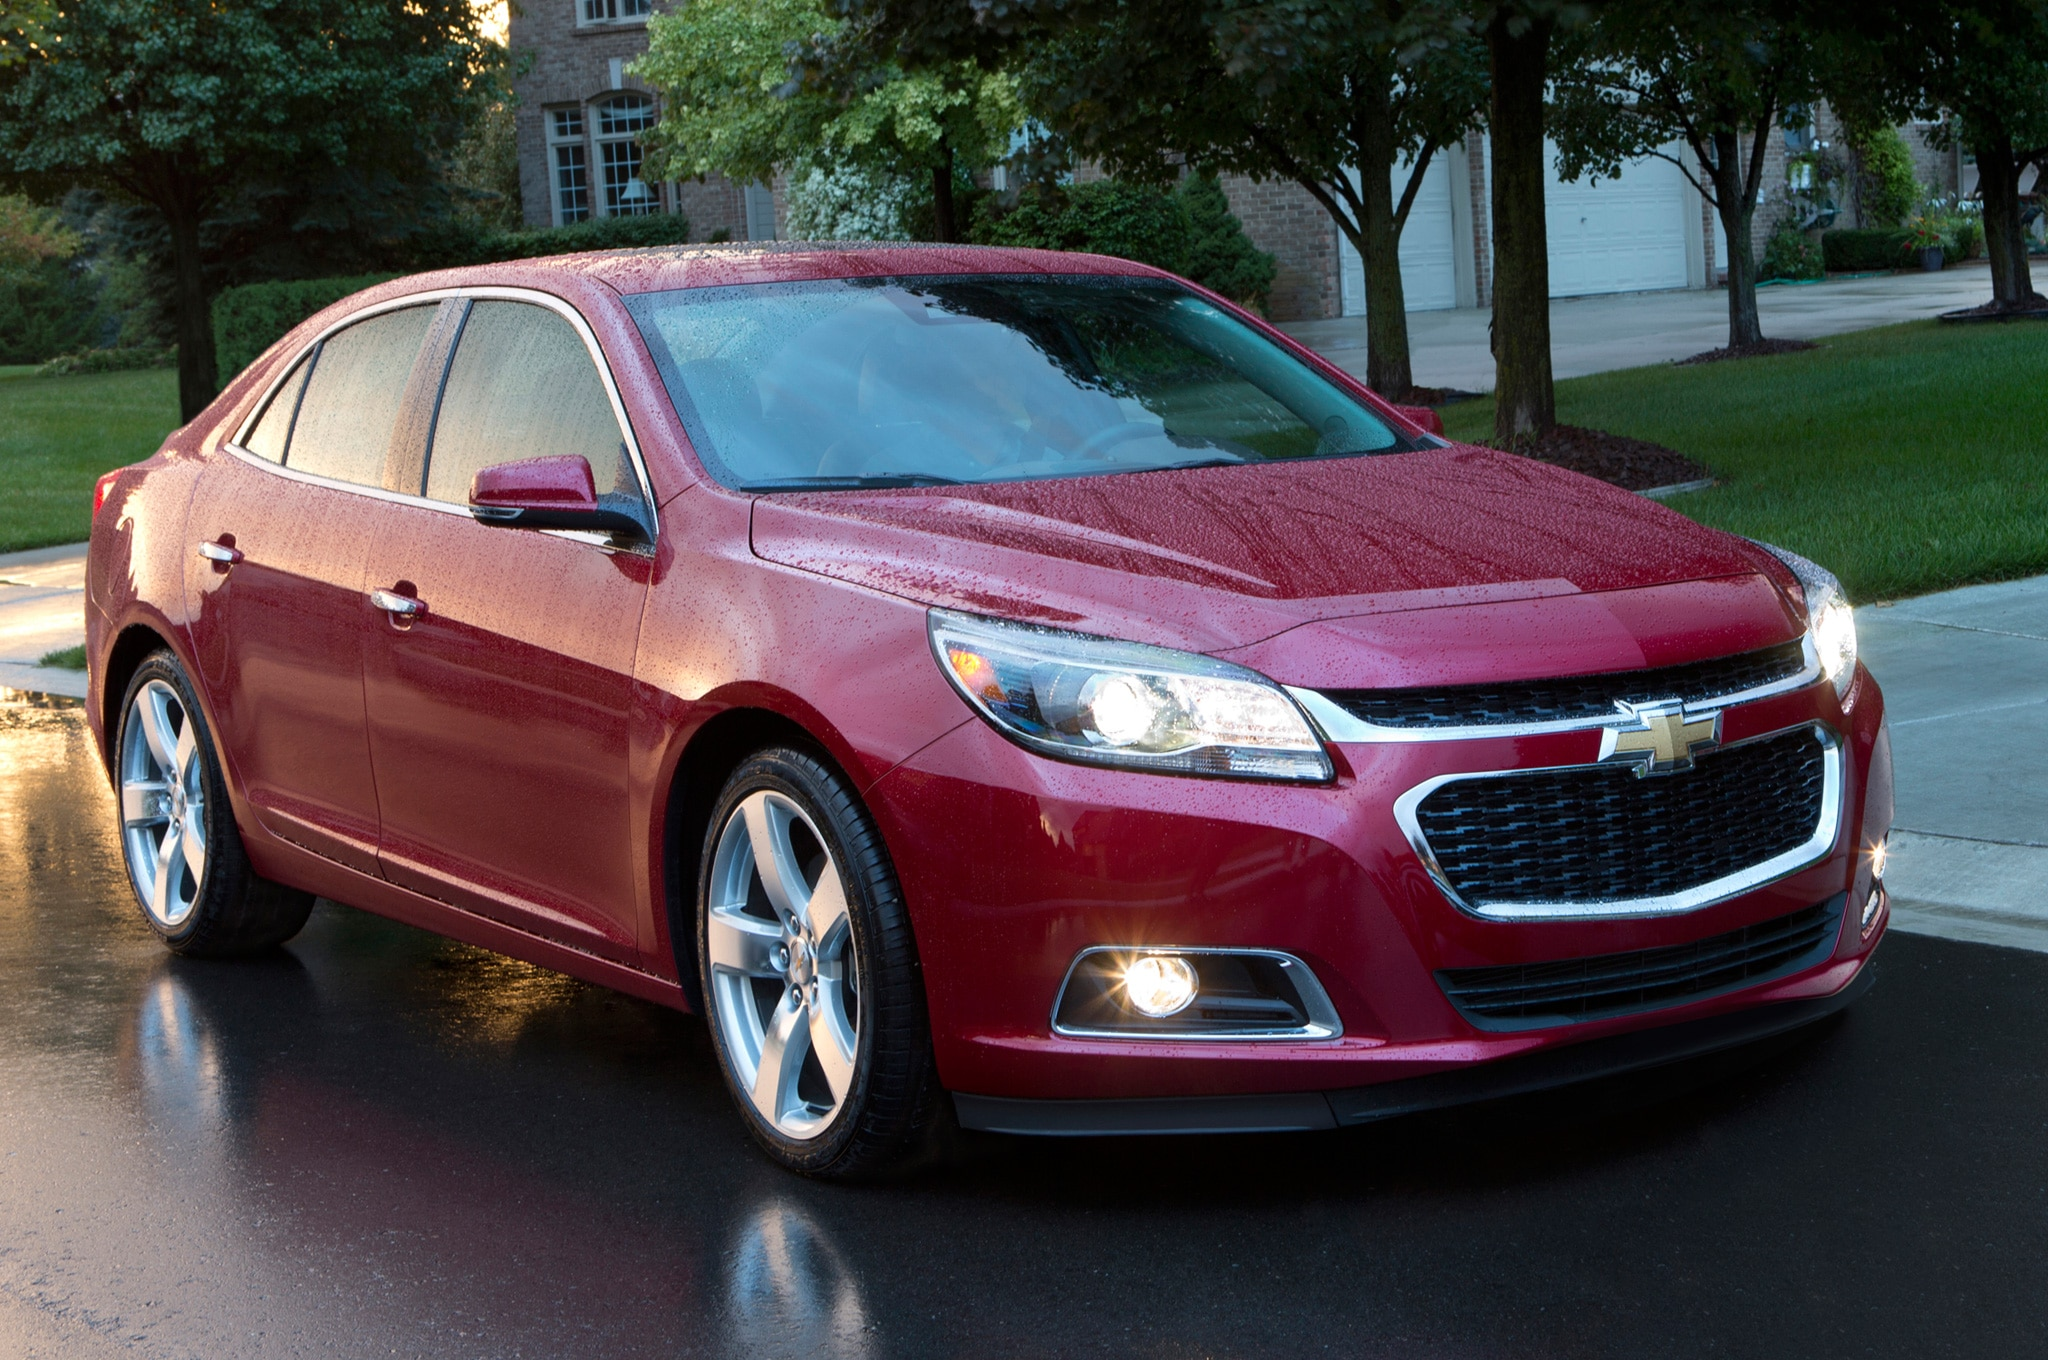 2014 Chevrolet Malibu Front Three Quarters View1